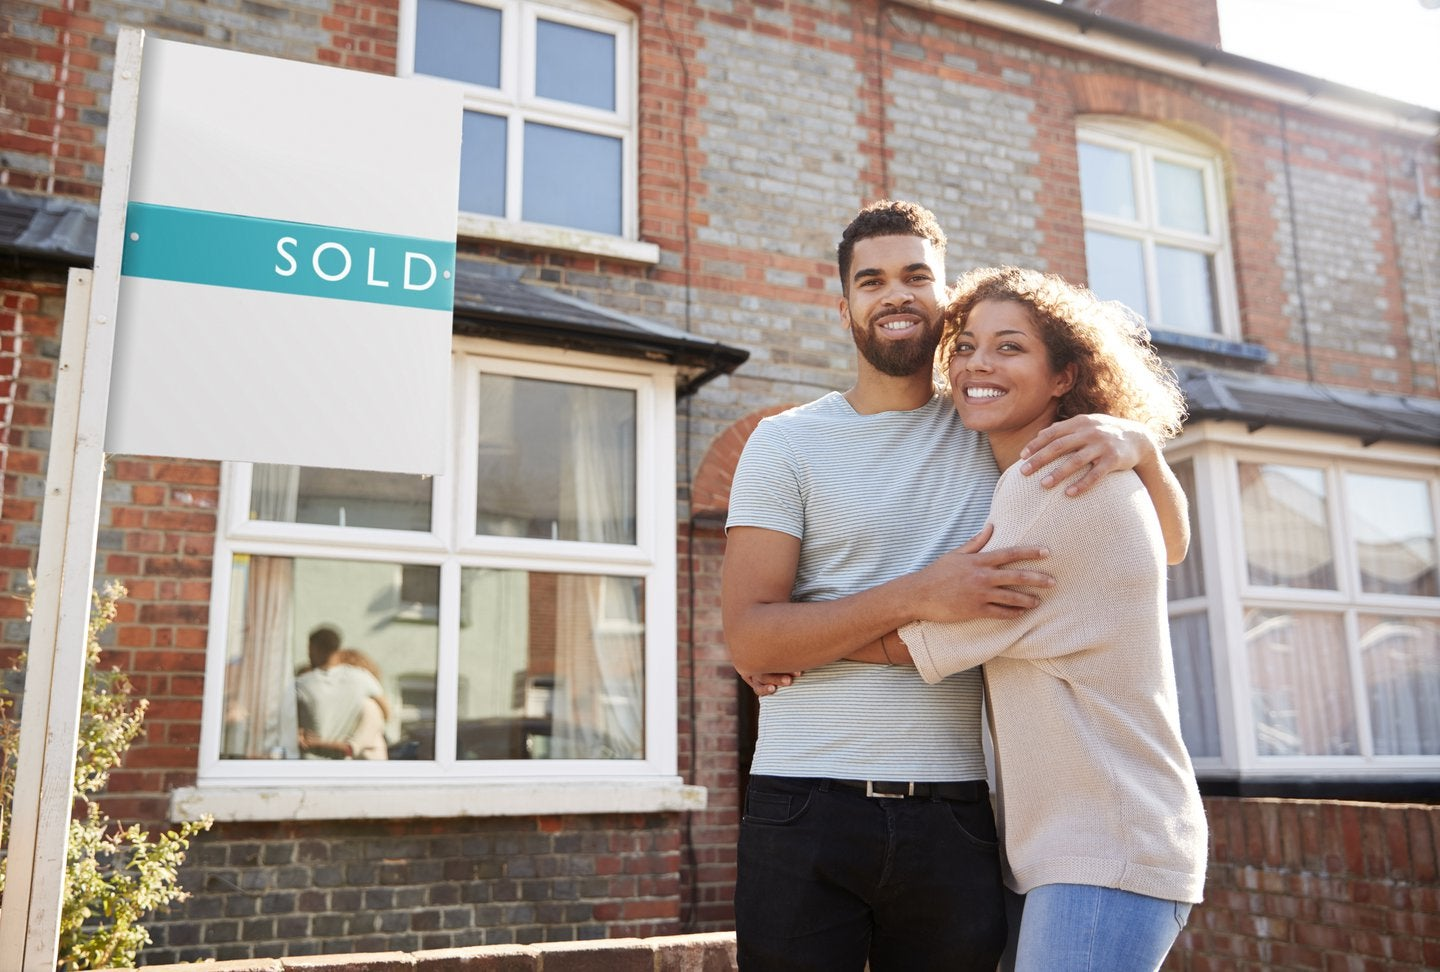 couple in a sold house